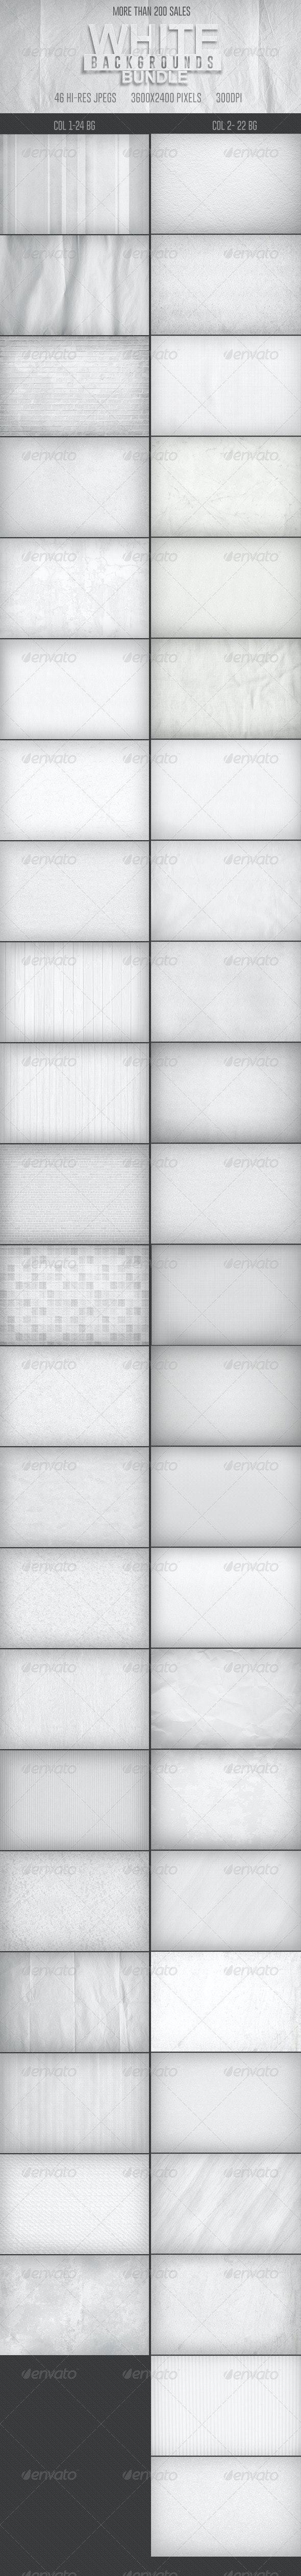 46 White Backgrounds Bundle - Backgrounds Graphics